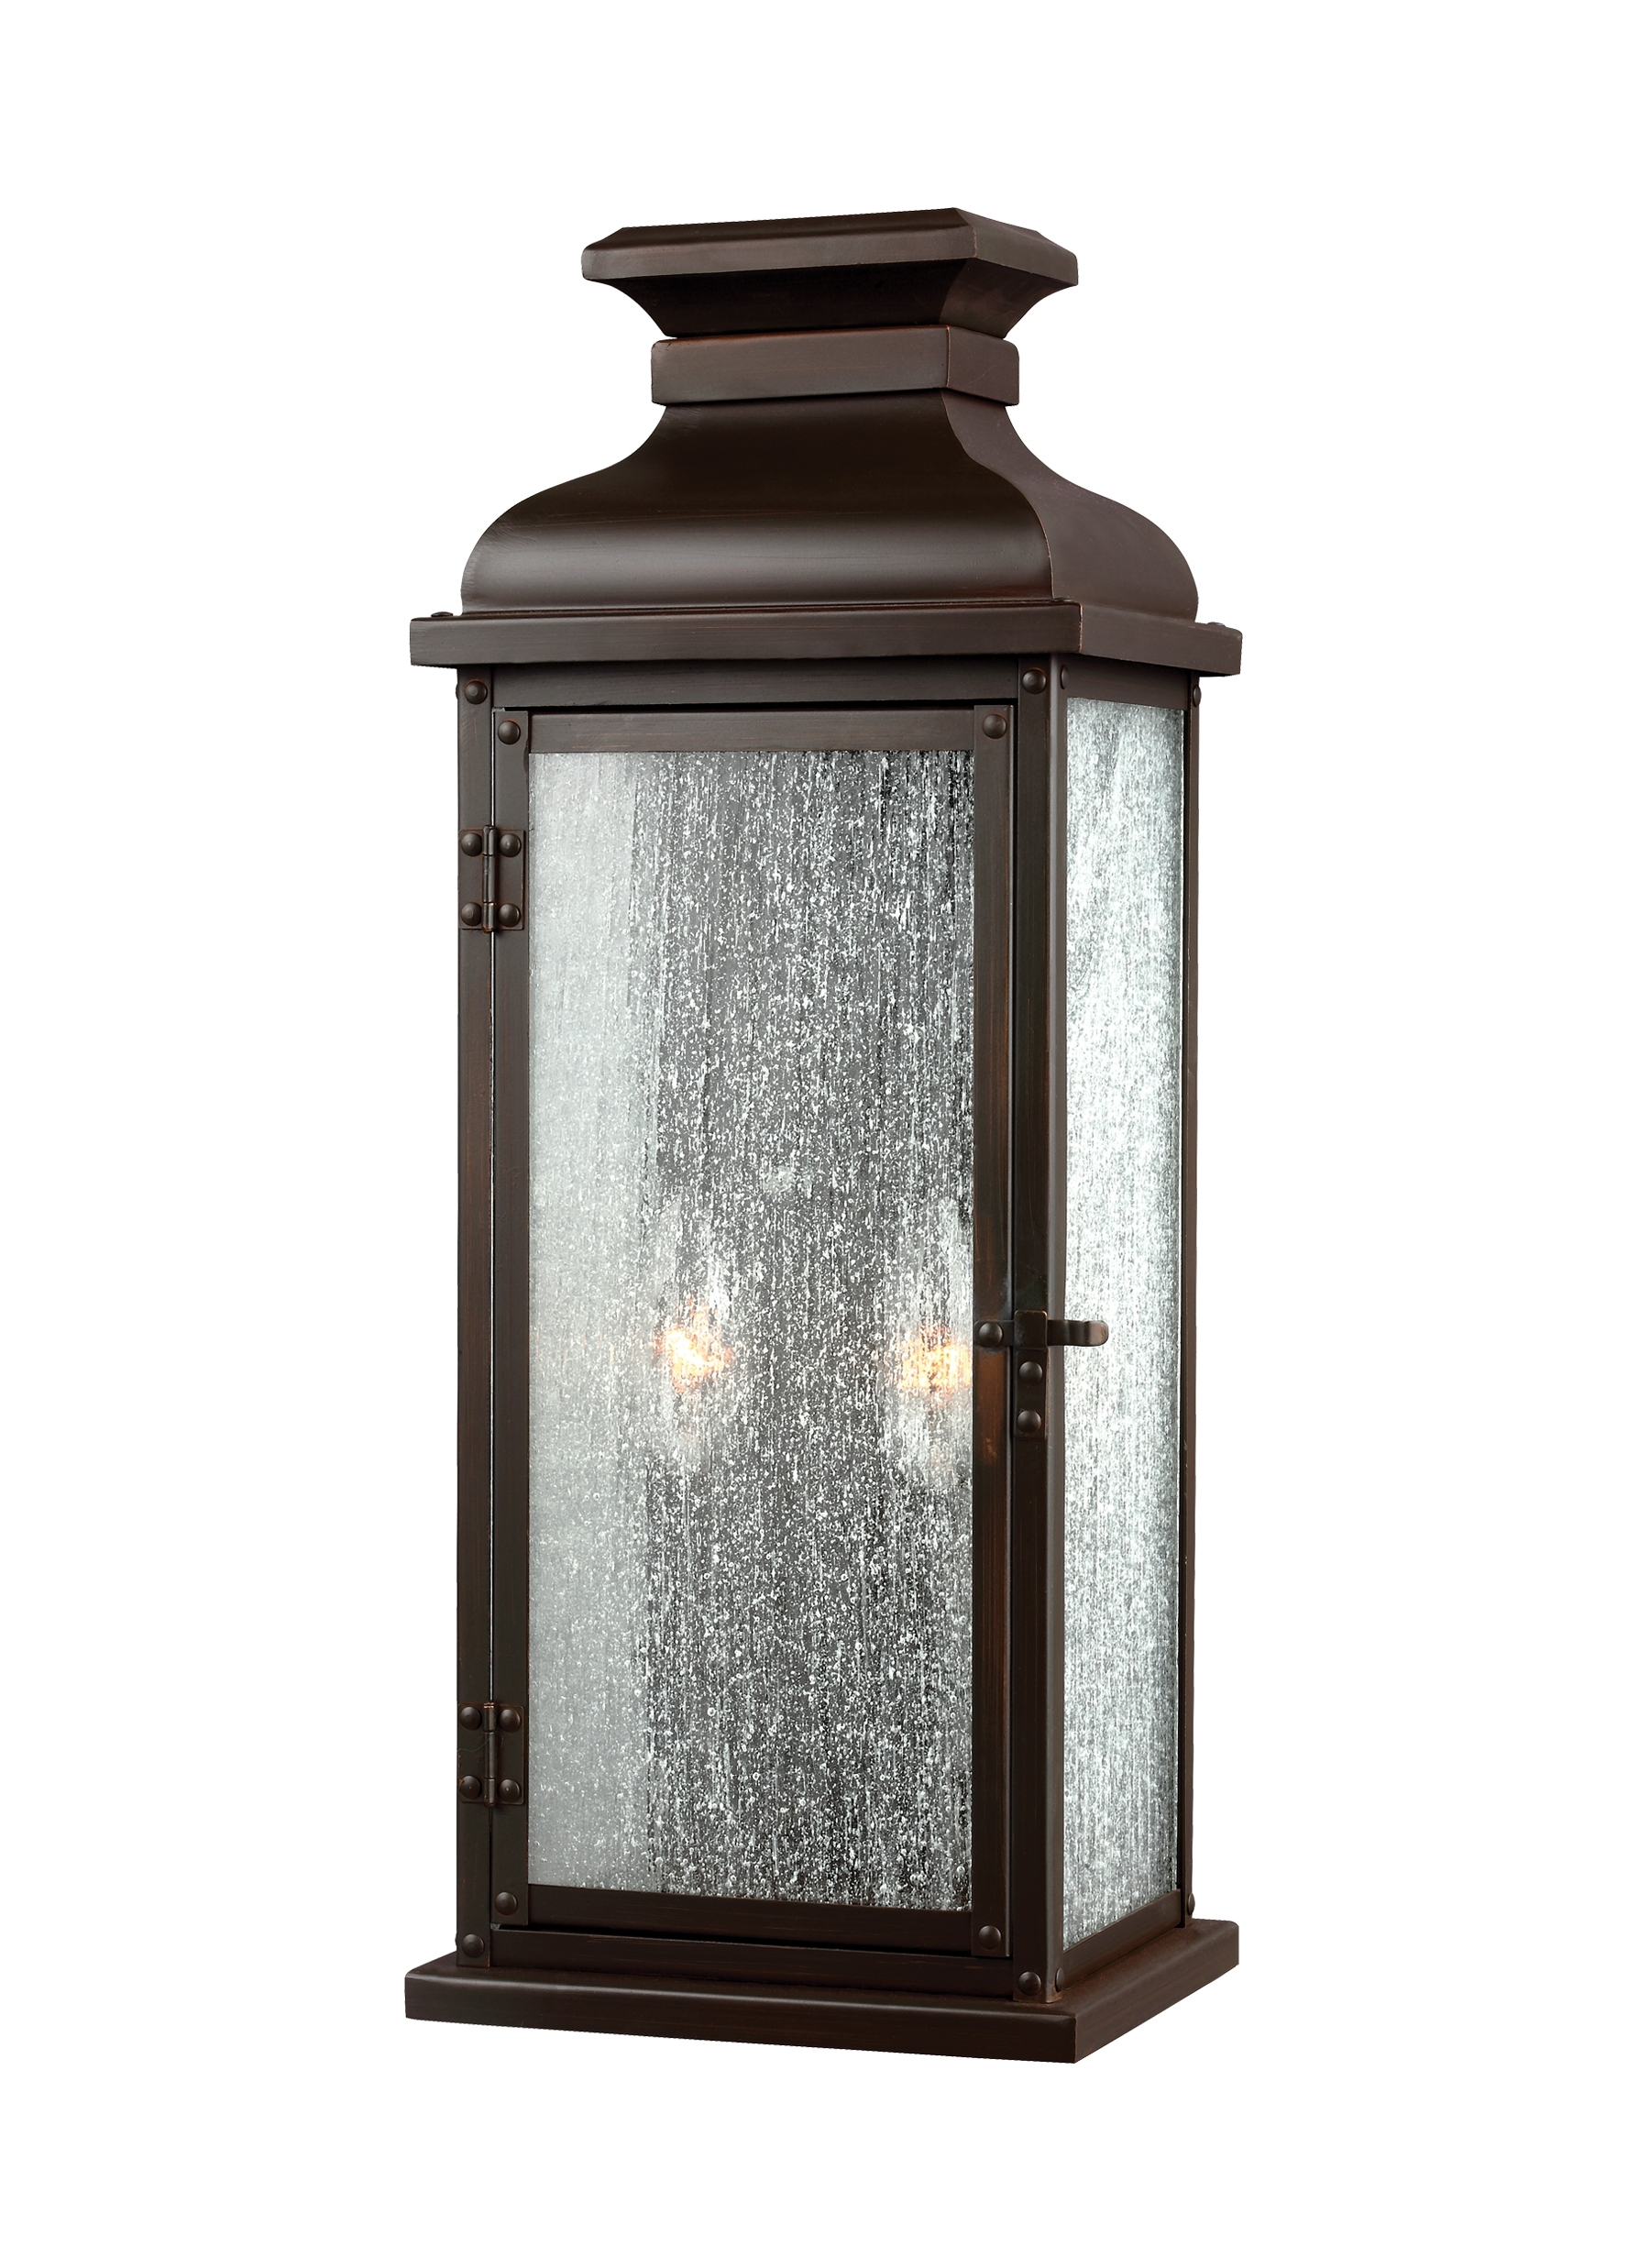 Ol11101Dac,2 – Light Outdoor Sconce,dark Aged Copper Pertaining To Favorite Italian Outdoor Lanterns (View 6 of 20)